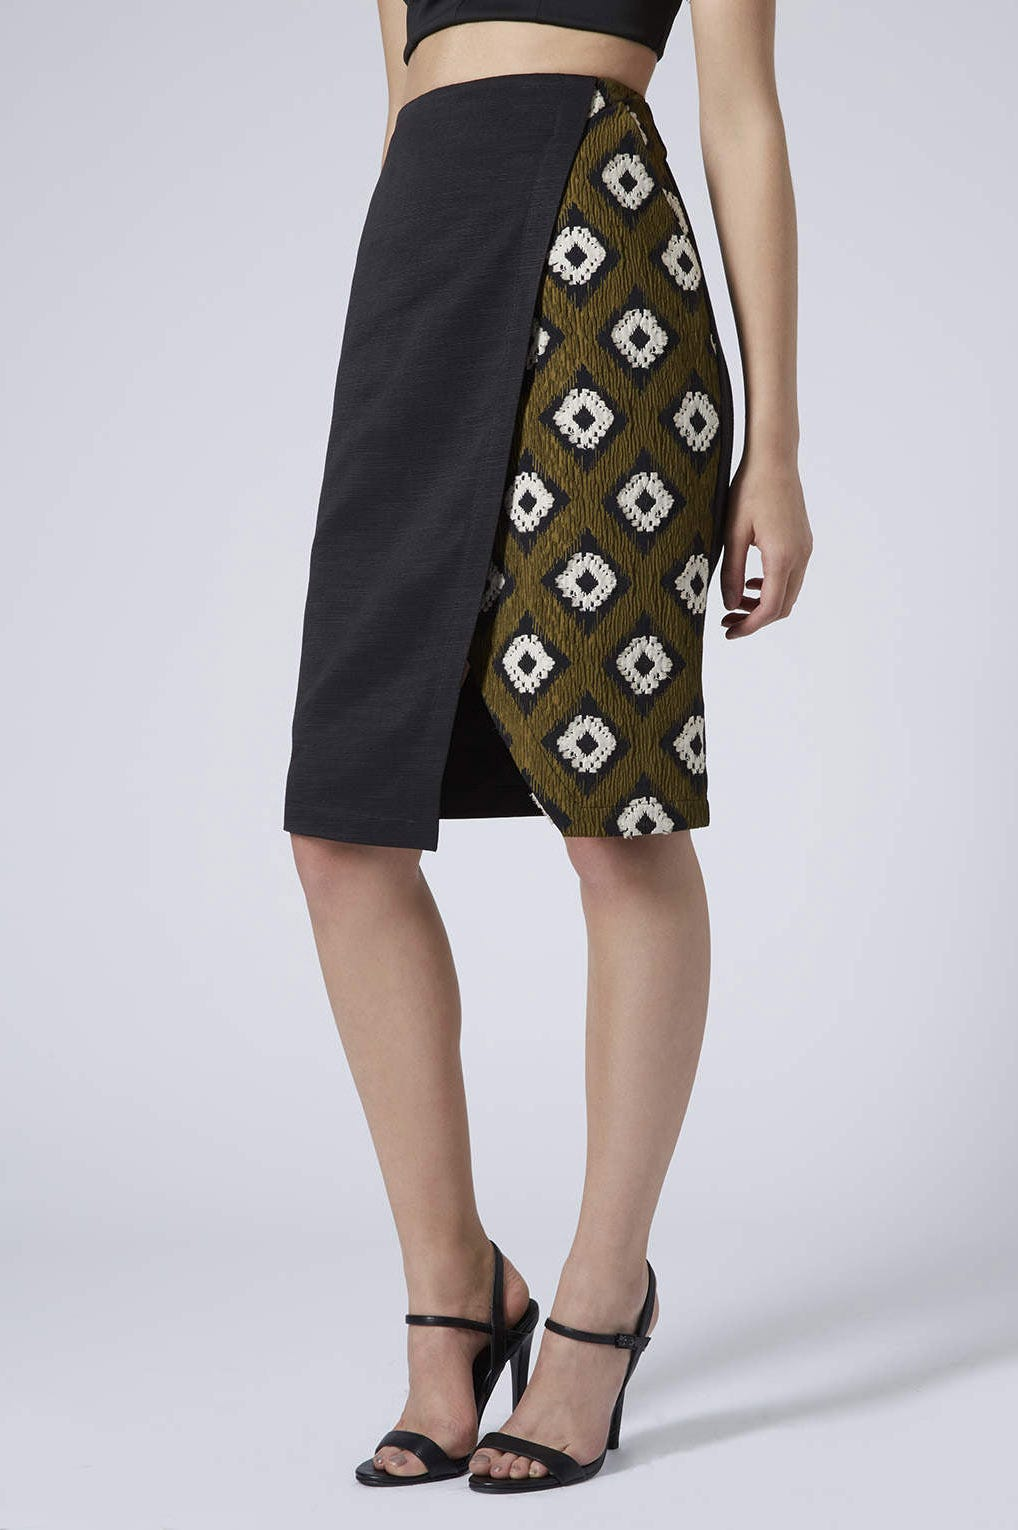 Slit Skirts For The Office - Pencil Shape